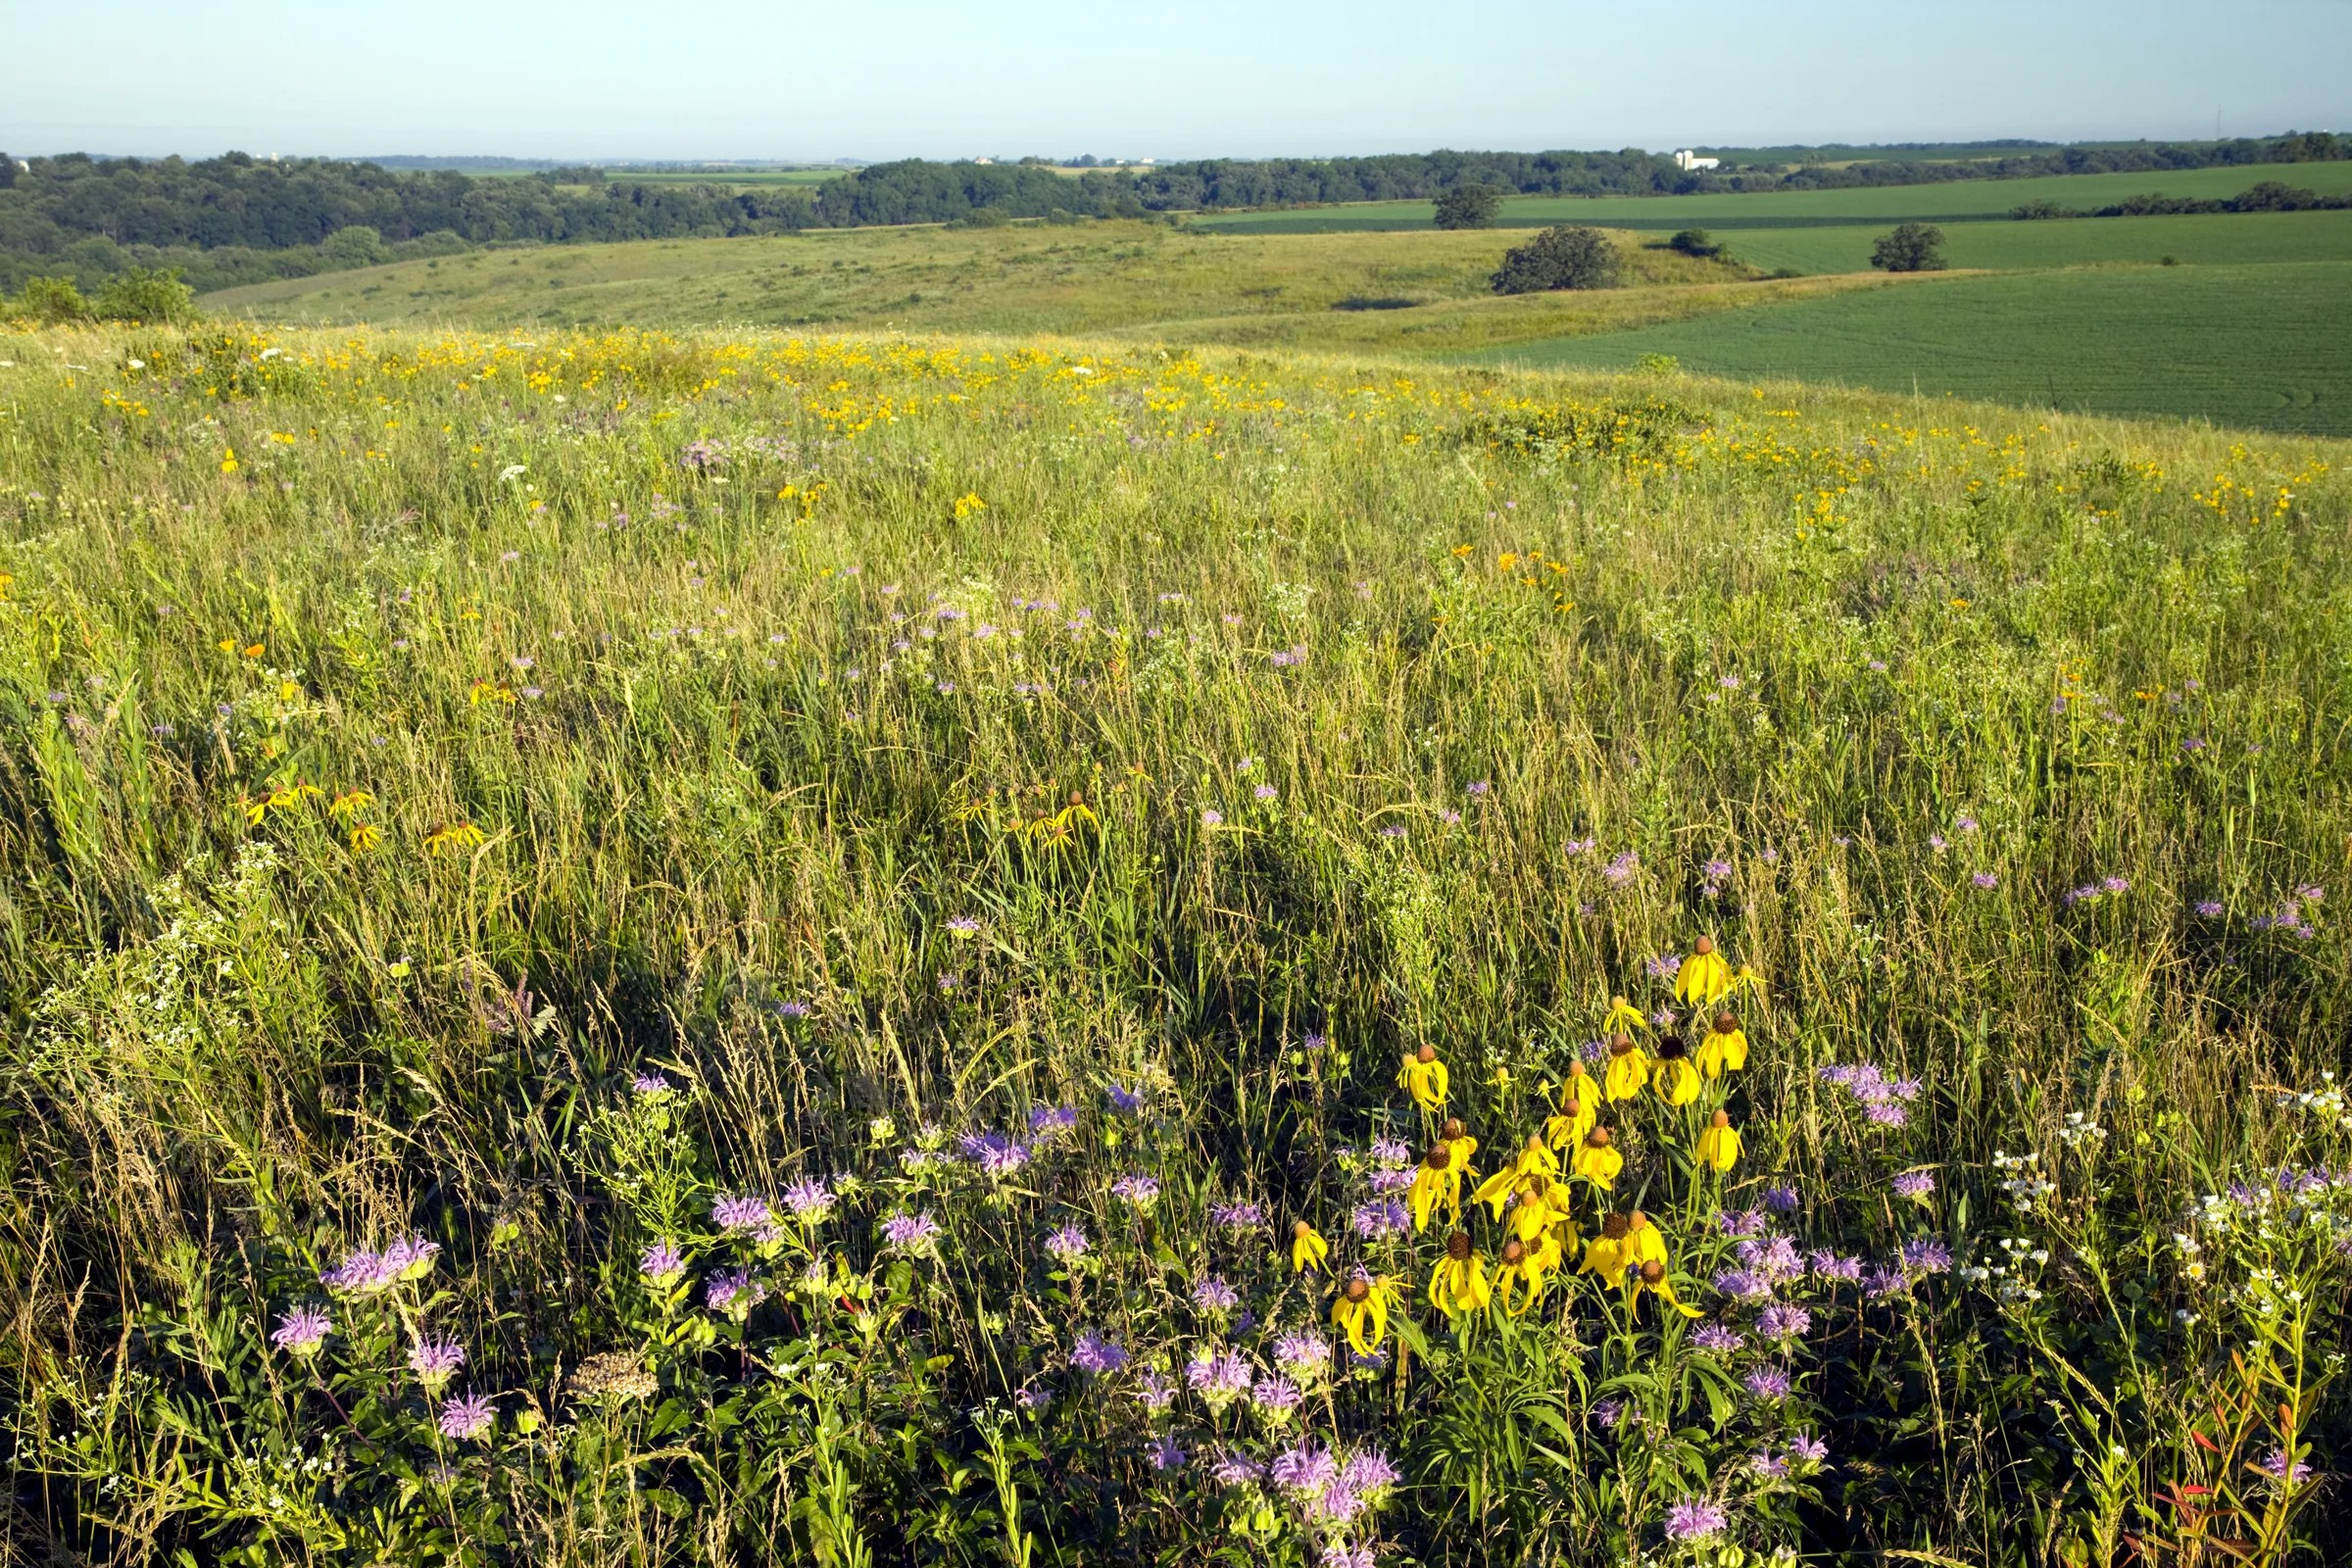 16/6/2021· most native prairies found today in wisconsin are small remnants that are less than 10 acres in size. Prairie Restoration In Wisconsin Bright Spot For Native Plants Birds